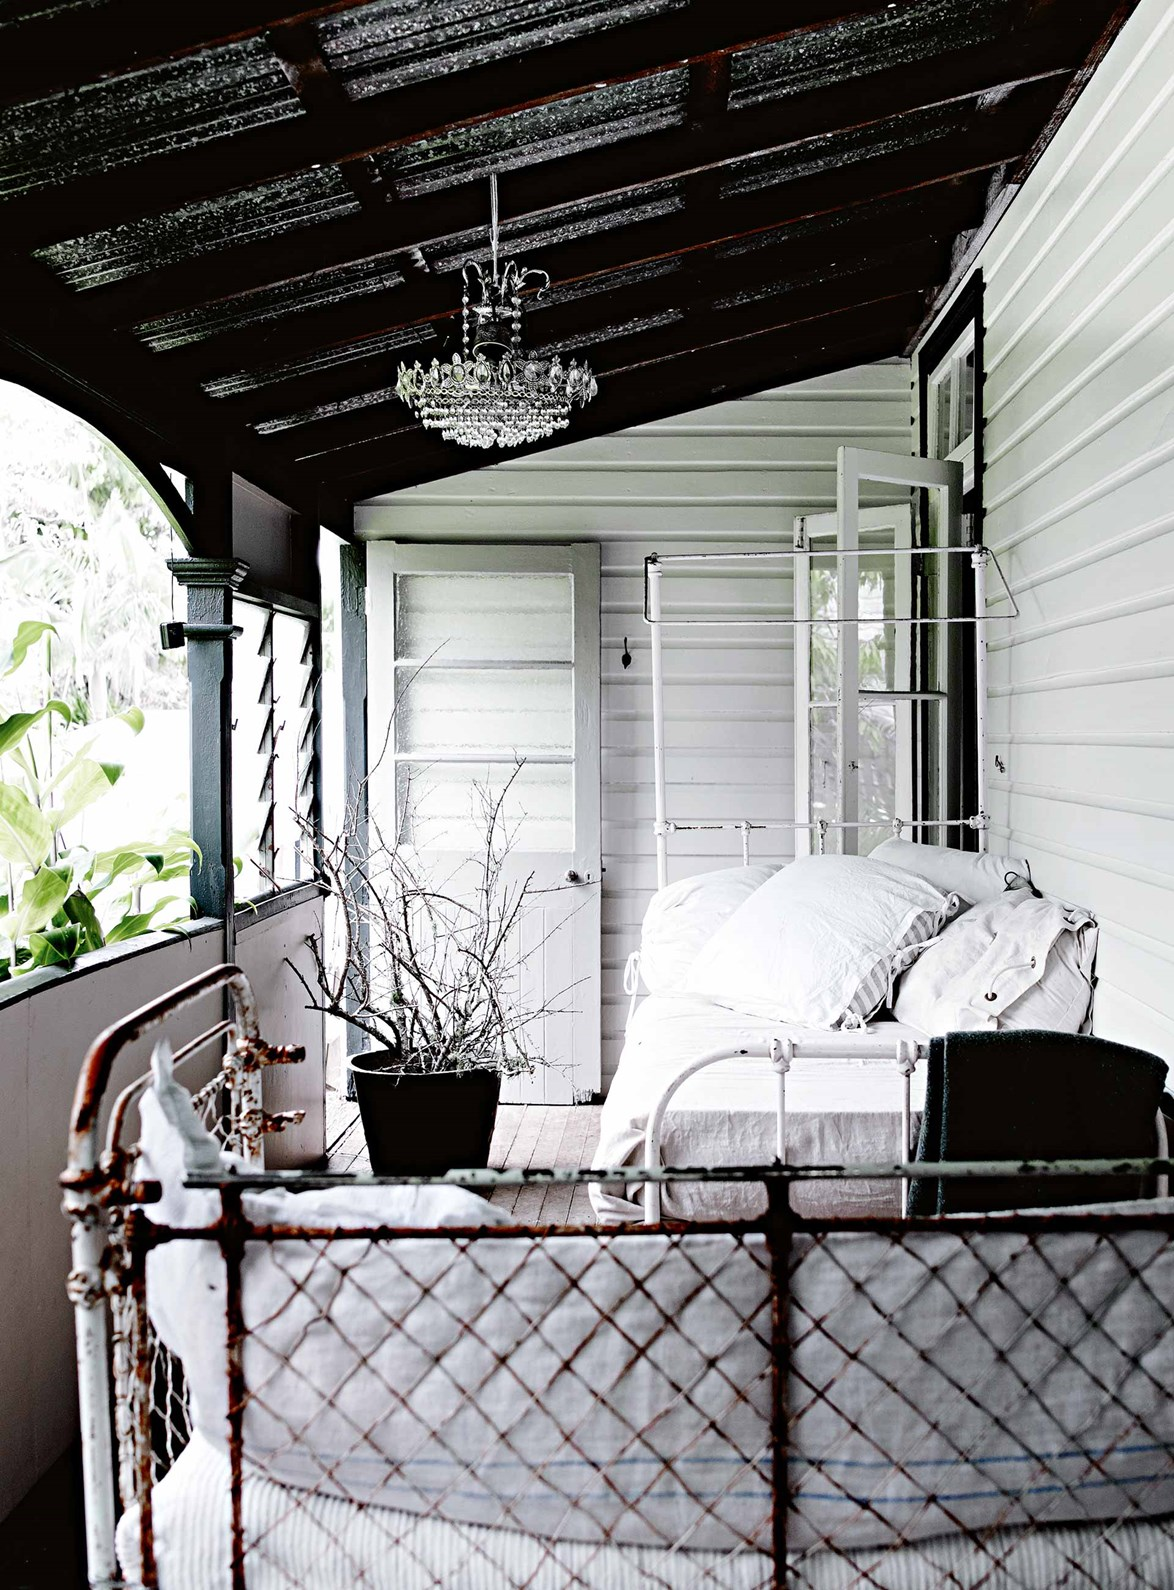 "**Get a daybed (or two!)**<p> The French look is as much about comfort as it is about style, so make sure you've got a chic space to sit back and unwind. These daybeds on the verandah of a [dressmaker's home in Byron Bay](https://www.homestolove.com.au/dressmakers-white-vintage-interior-in-the-byron-bay-hinterland-13719|target=""_blank"") are just the ticket. <p> <p>*Photo: Mark Roper*<p>"